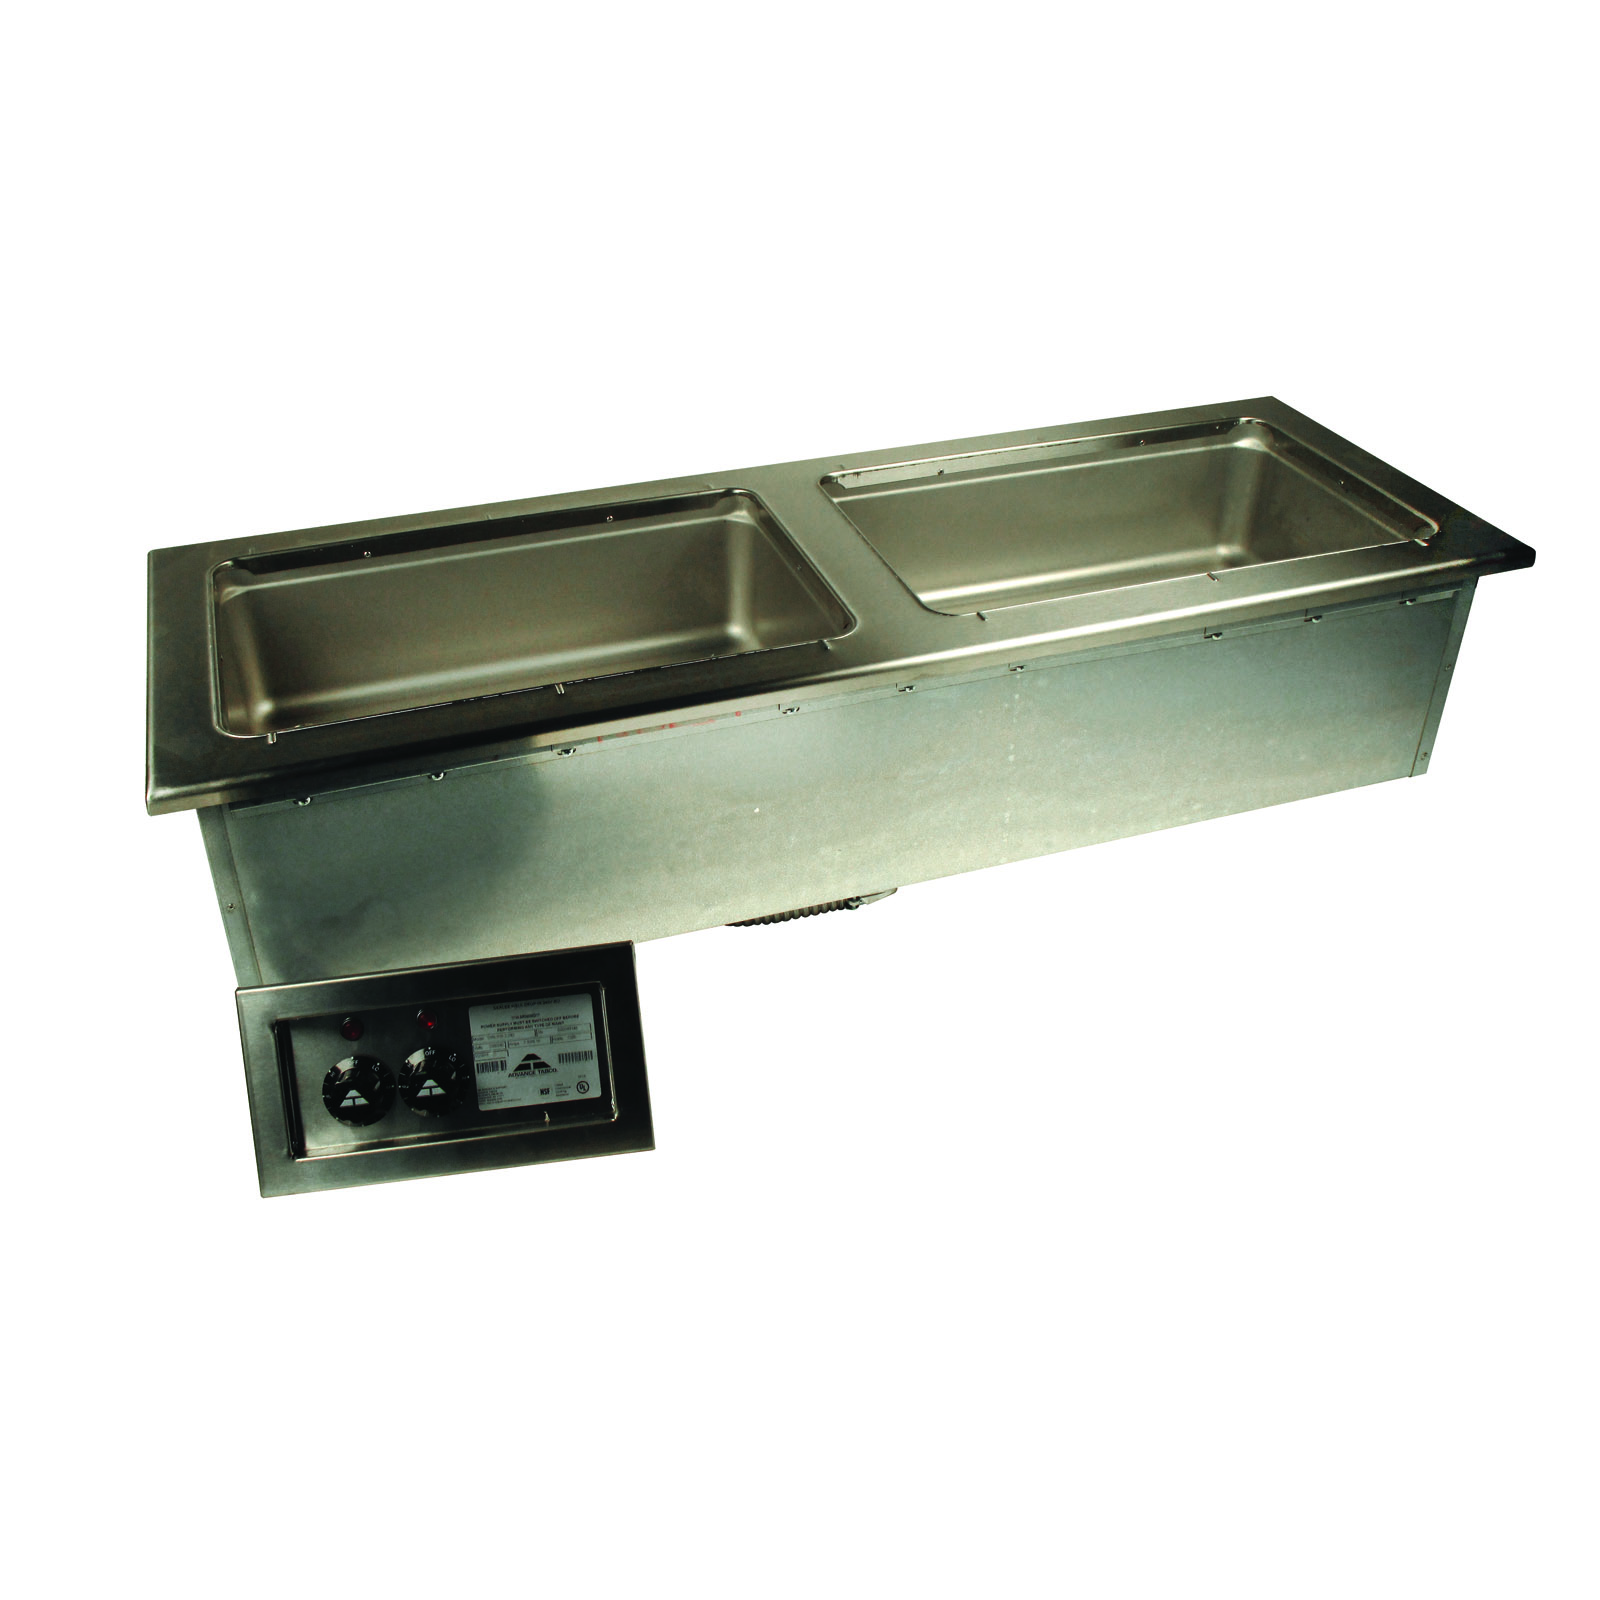 Advance Tabco DISLSW-2-120 hot food well unit, drop-in, electric